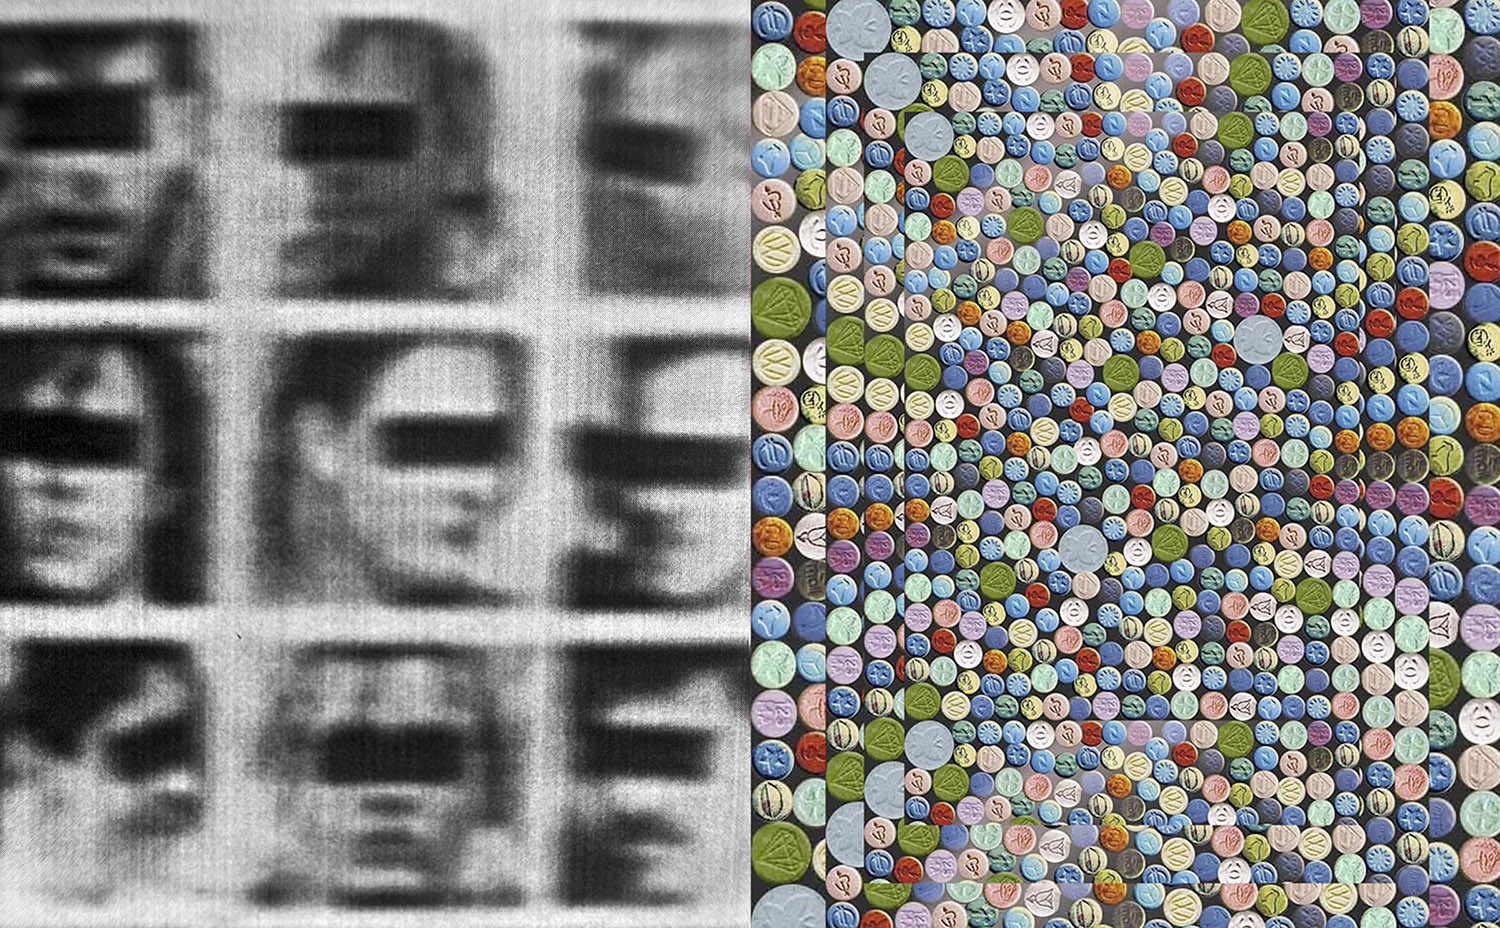 Gallery of Hate (Poll Tax Riots 1990), 2013 and Pills Fractal, 2013. The left hand-side is a reworking of a newspaper picture from titled 'Gallery of Hate', which was a call for the arrest of people photographed participating in the Poll Tax riots in London 1990. Pills Fractal, 2013 is an image sourced from the internet and reworked, showing Ecstasy pills (MDMA) – the drug which fueled rave culture. The Poll Tax riots and later the Criminal Justice and Order bill of 1994 are credited with politicizing a formerly apolitical youth movement (rave culture).